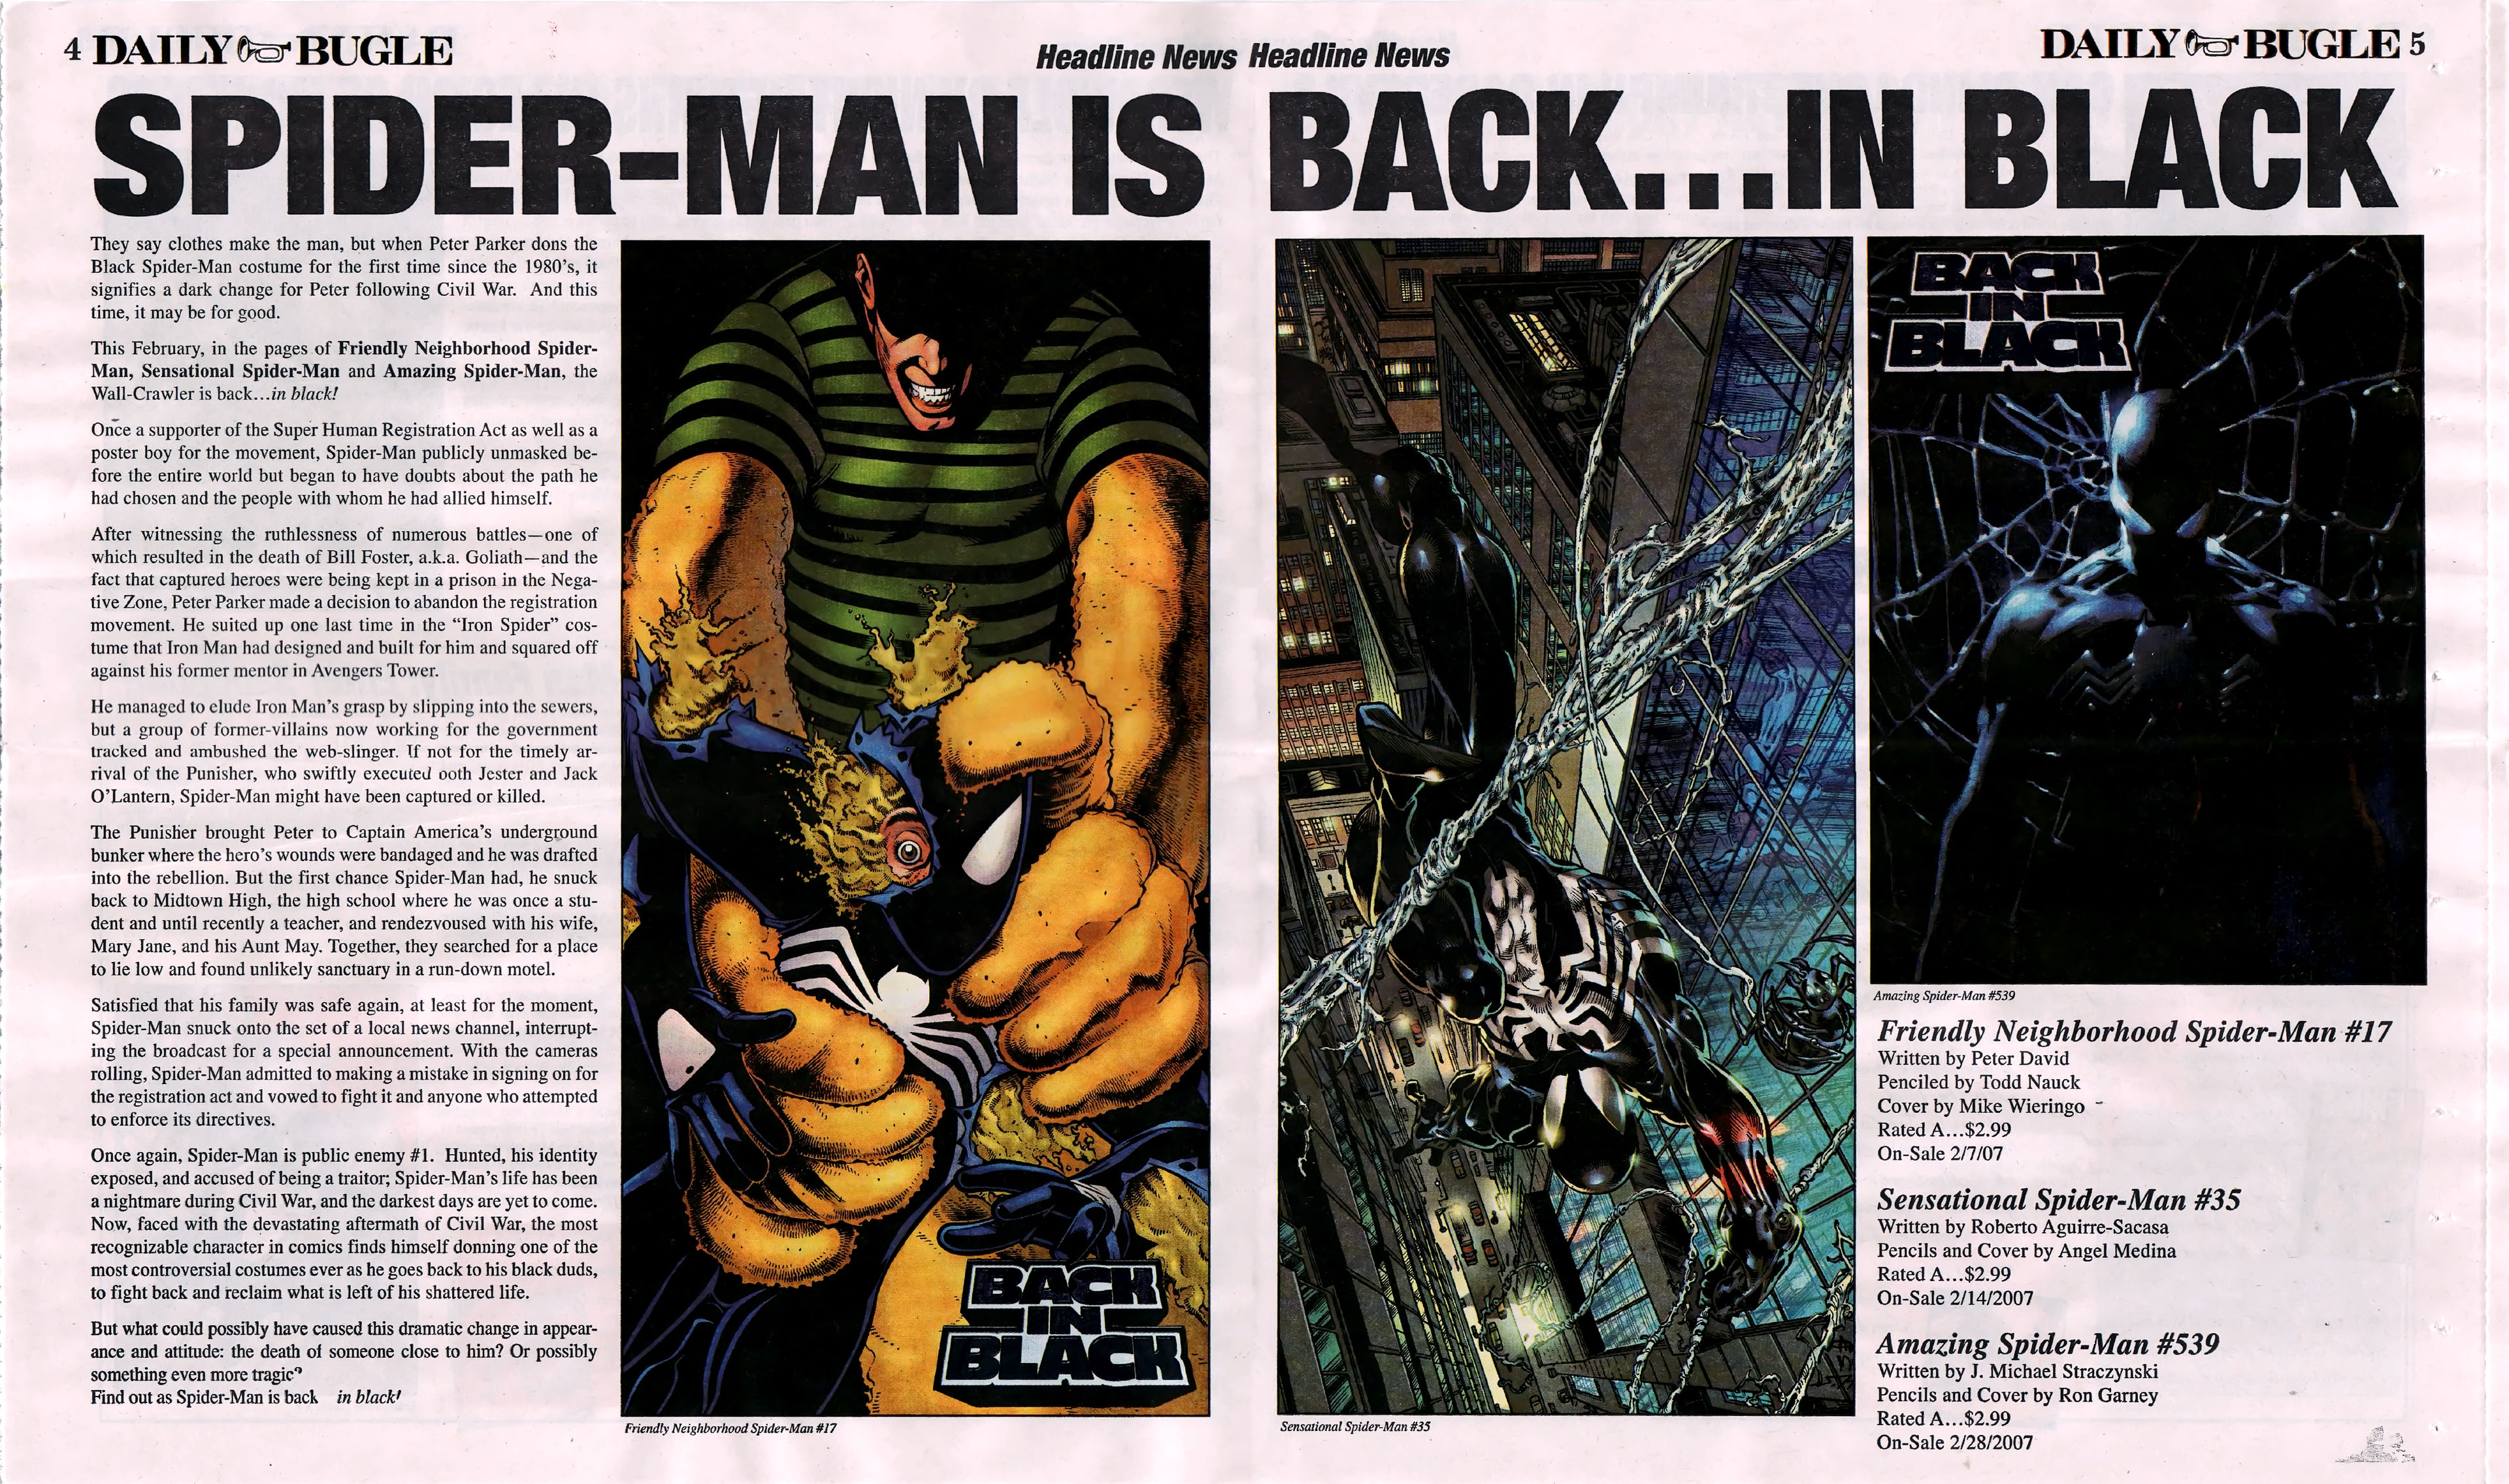 Read online Daily Bugle (2006) comic -  Issue #5 - 5